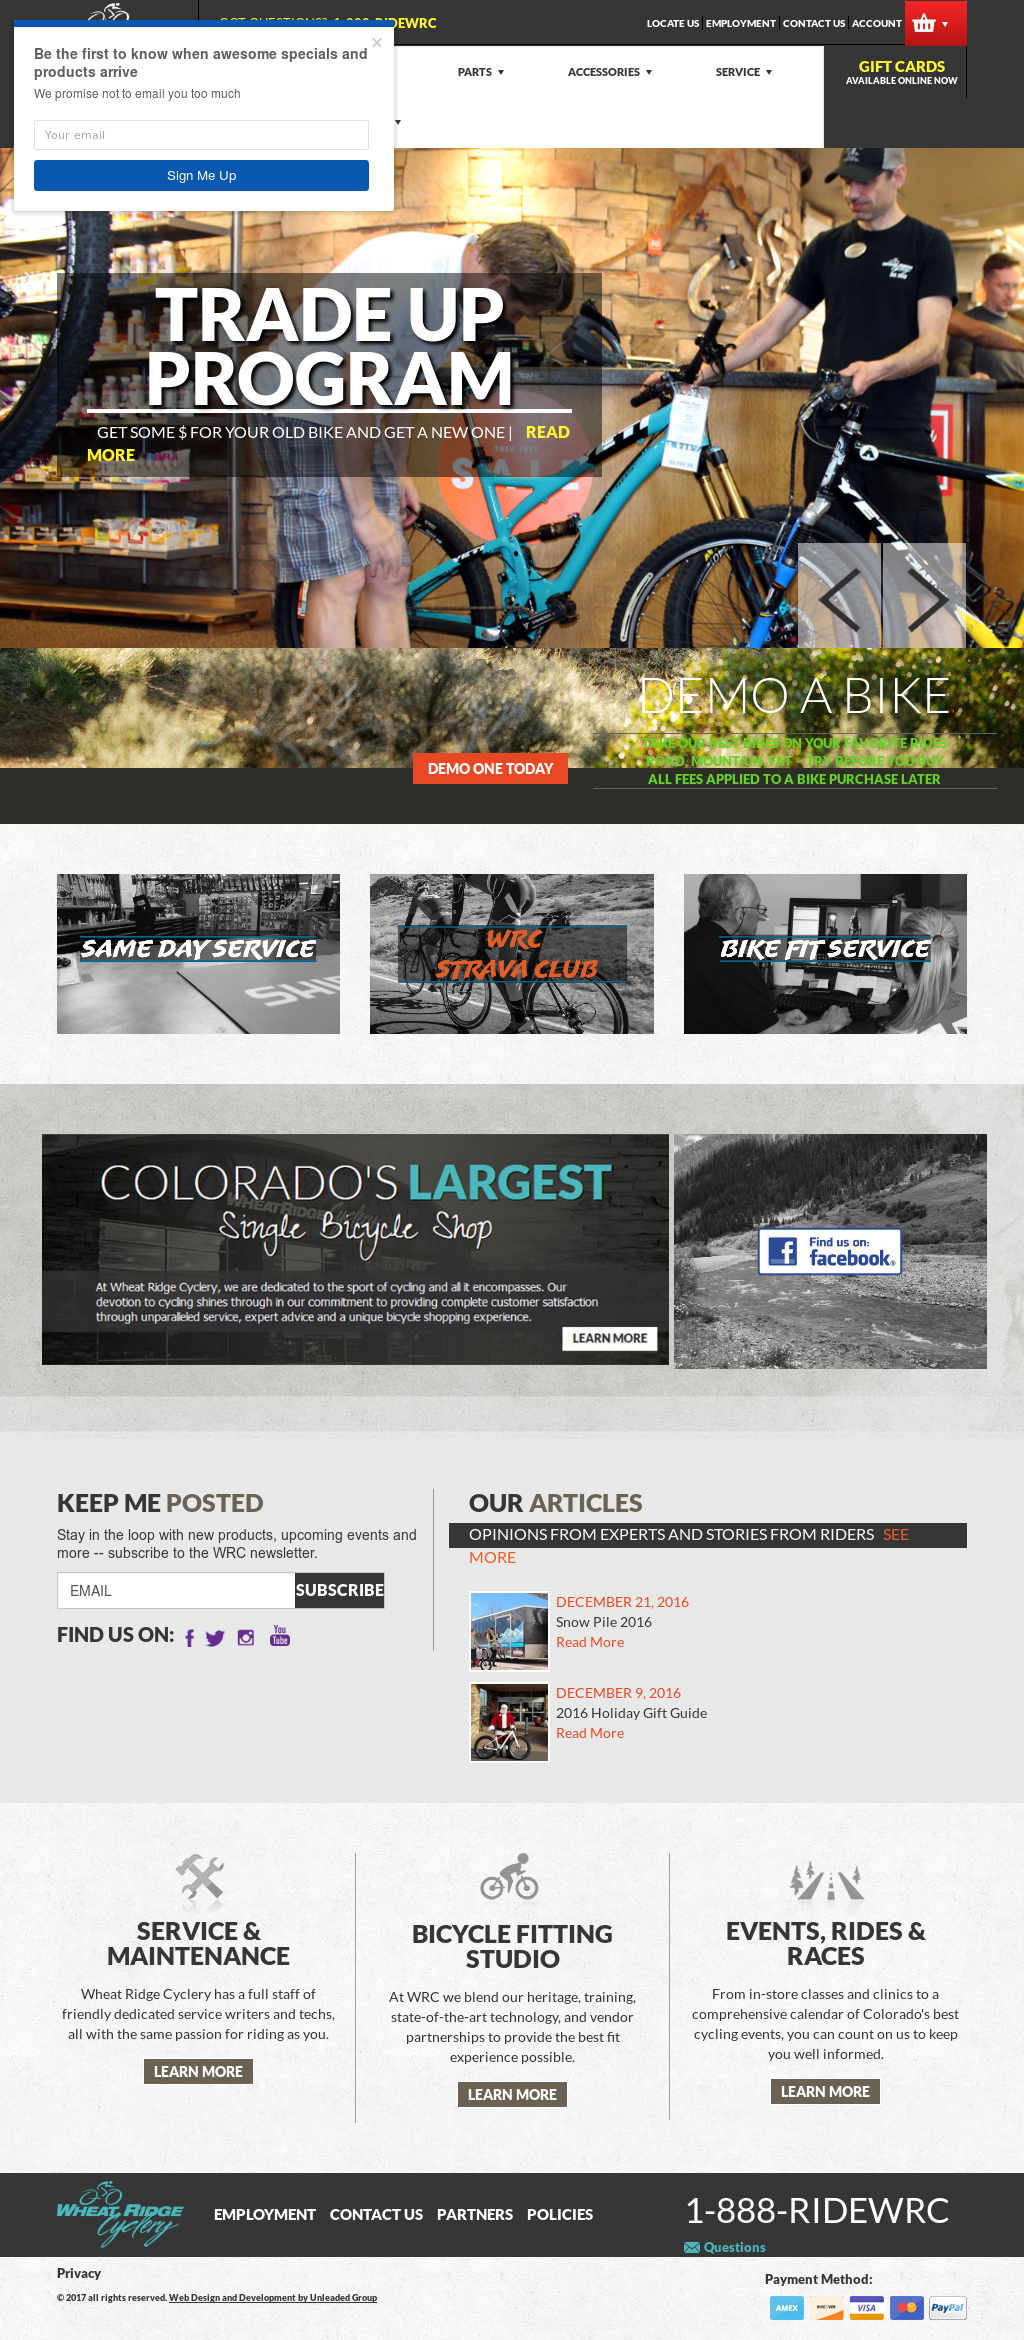 wheat ridge mature dating site Search for local 50+ singles in colorado online dating brings singles together who may never otherwise meet it's a big world and the ourtimecom community wants to help you connect with singles in your area.